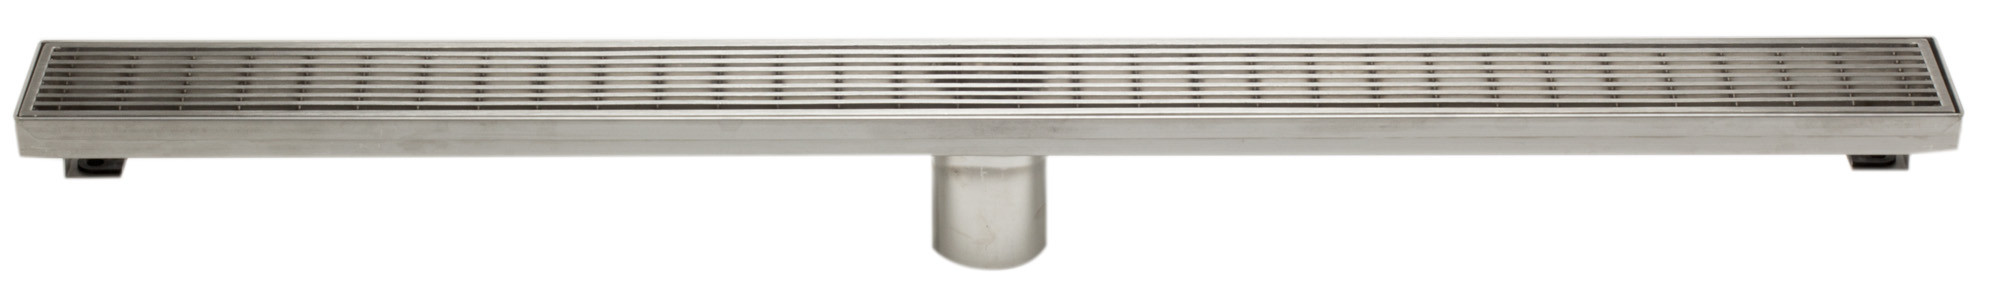 "ALFI brand ABLD32D 32"" Modern Stainless Steel Linear Shower Drain with Groove Lines"